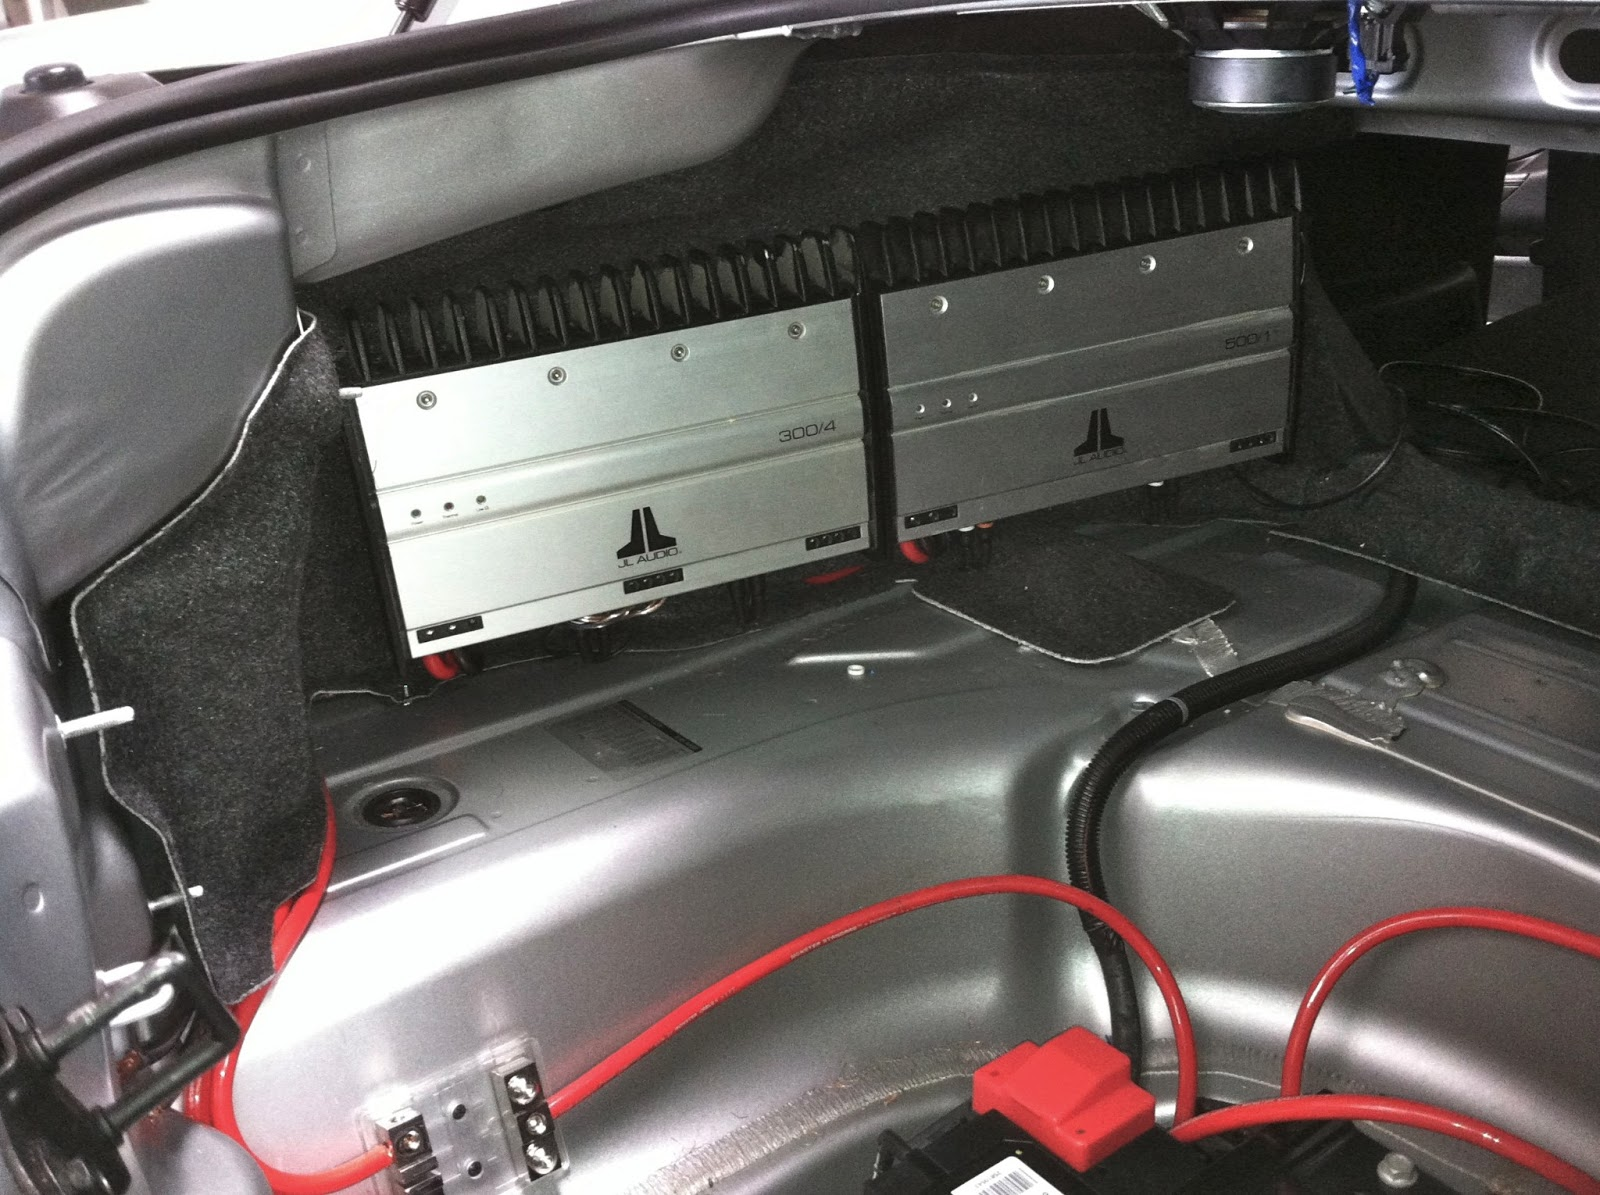 2010 camaro amp wiring diagram 2010 image wiring car audio tips tricks and how to s 2012 chevy camaro factory amp on 2010 camaro